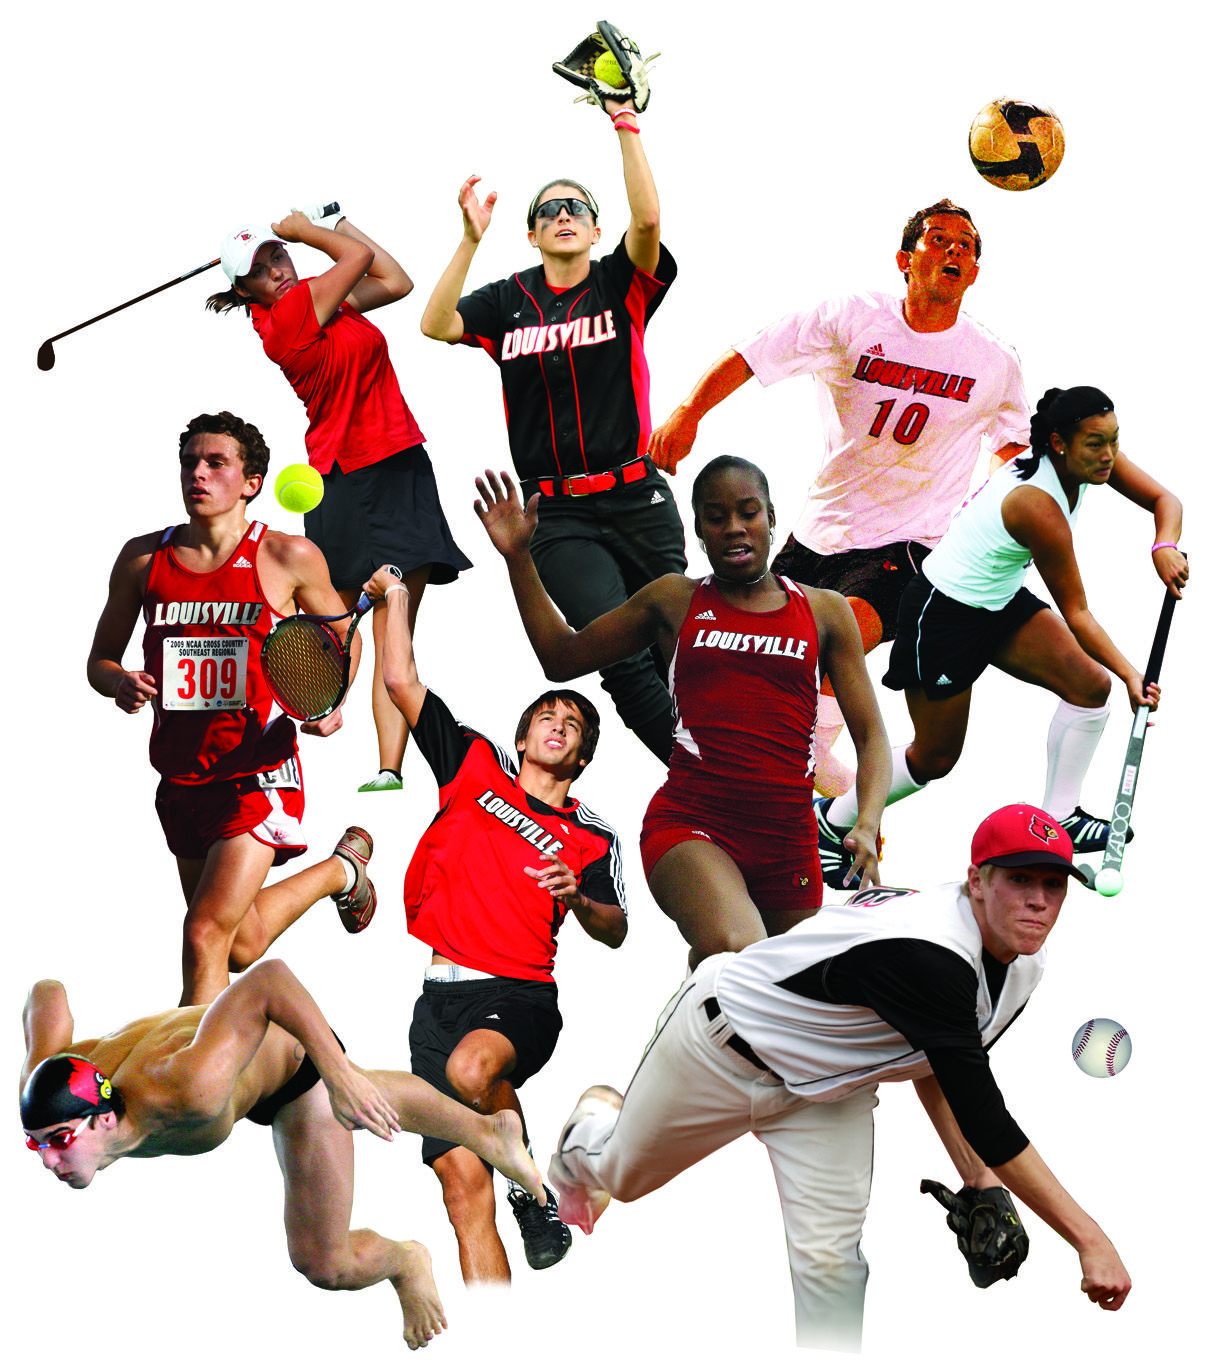 images of sports UofL Sports Traditions ALL KINDS OF SPORTS